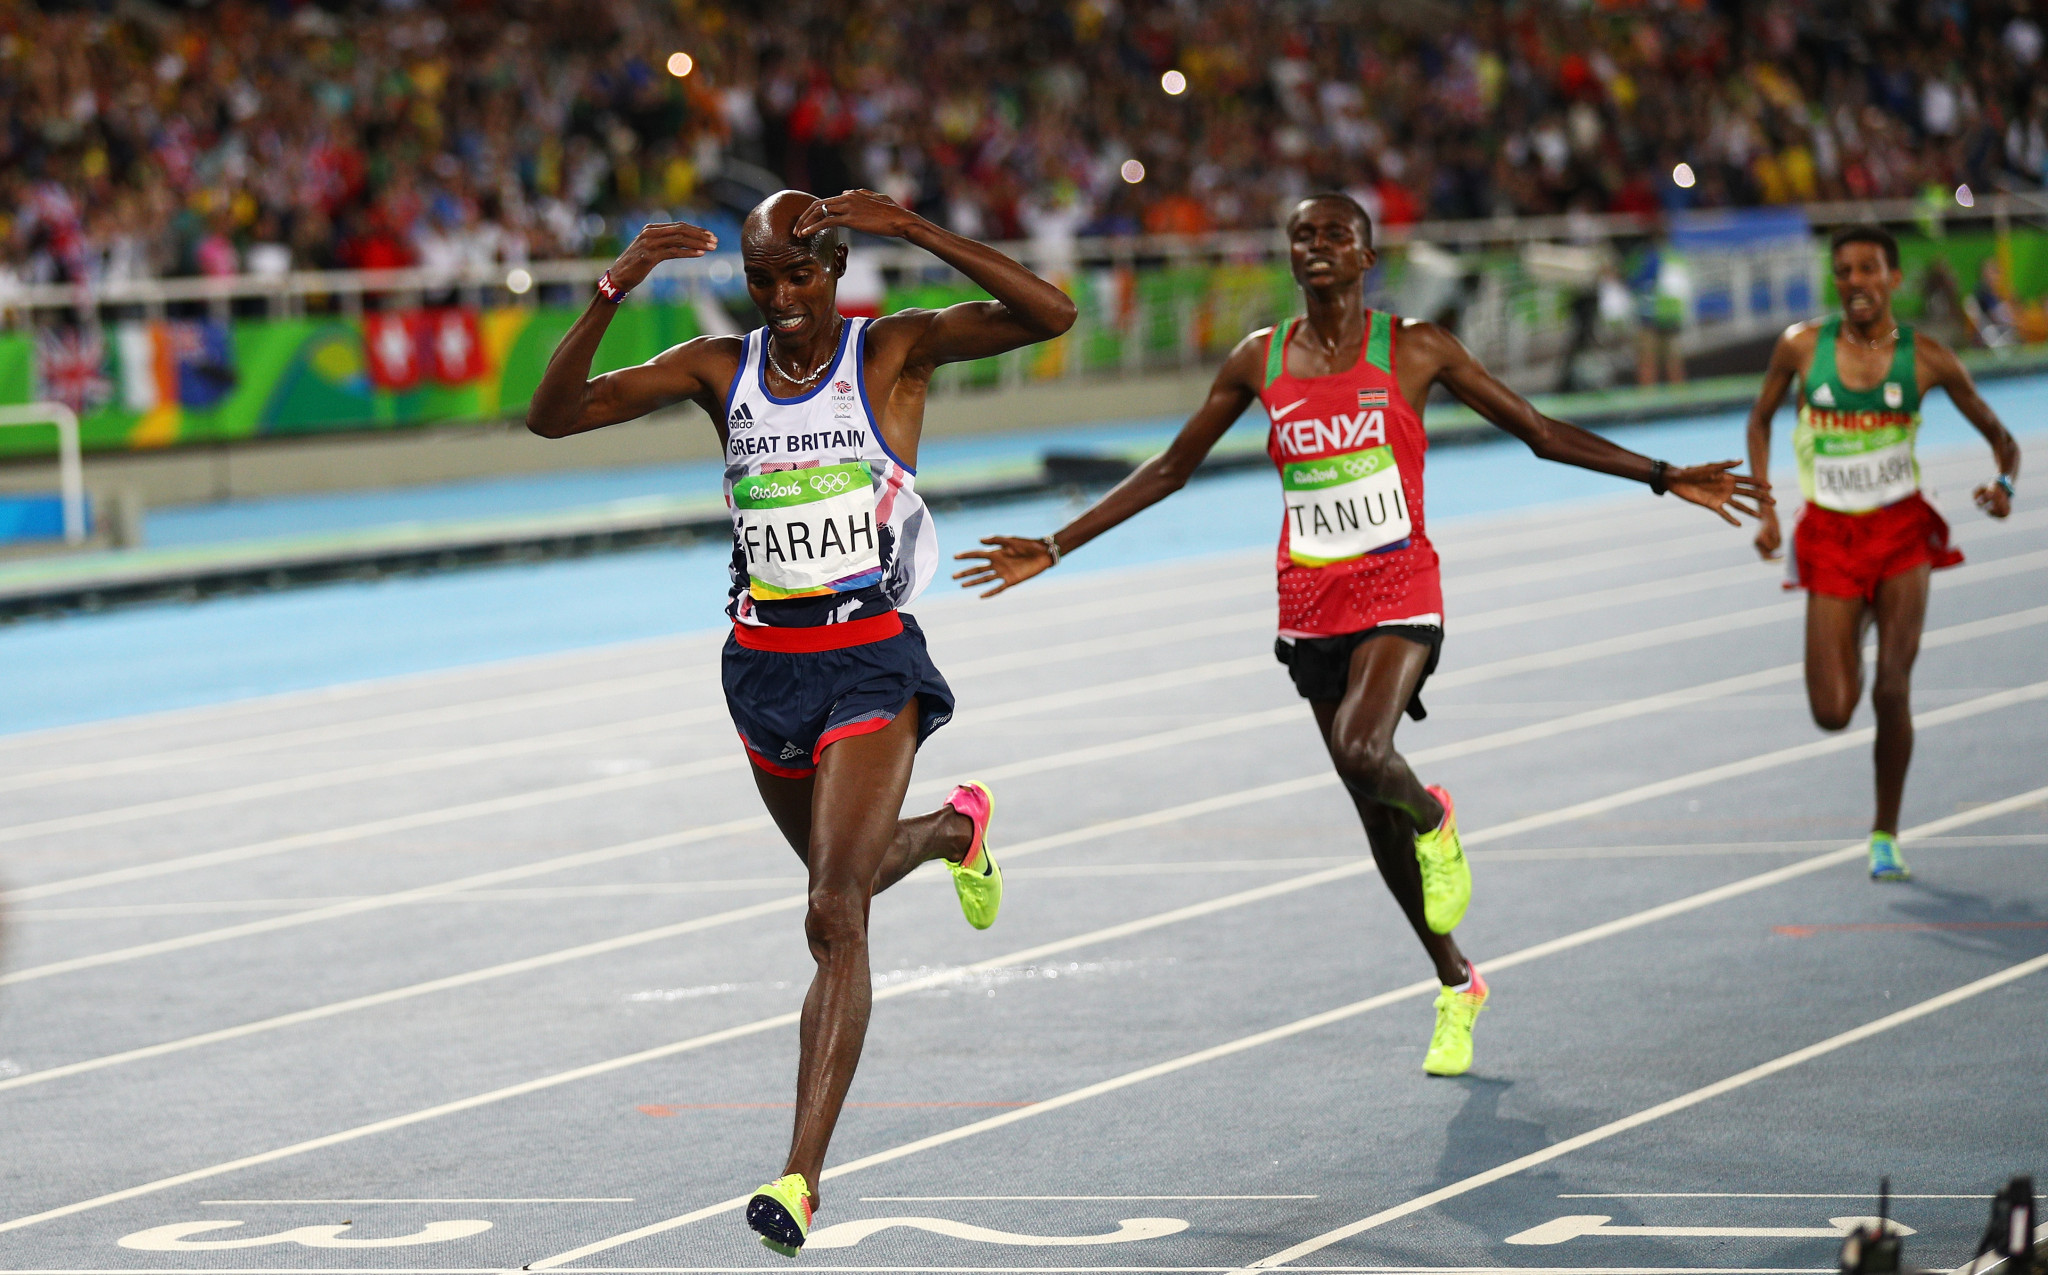 Sir Mo Farah celebrates after winning 10,000m gold at Rio 2016 ©Getty Images